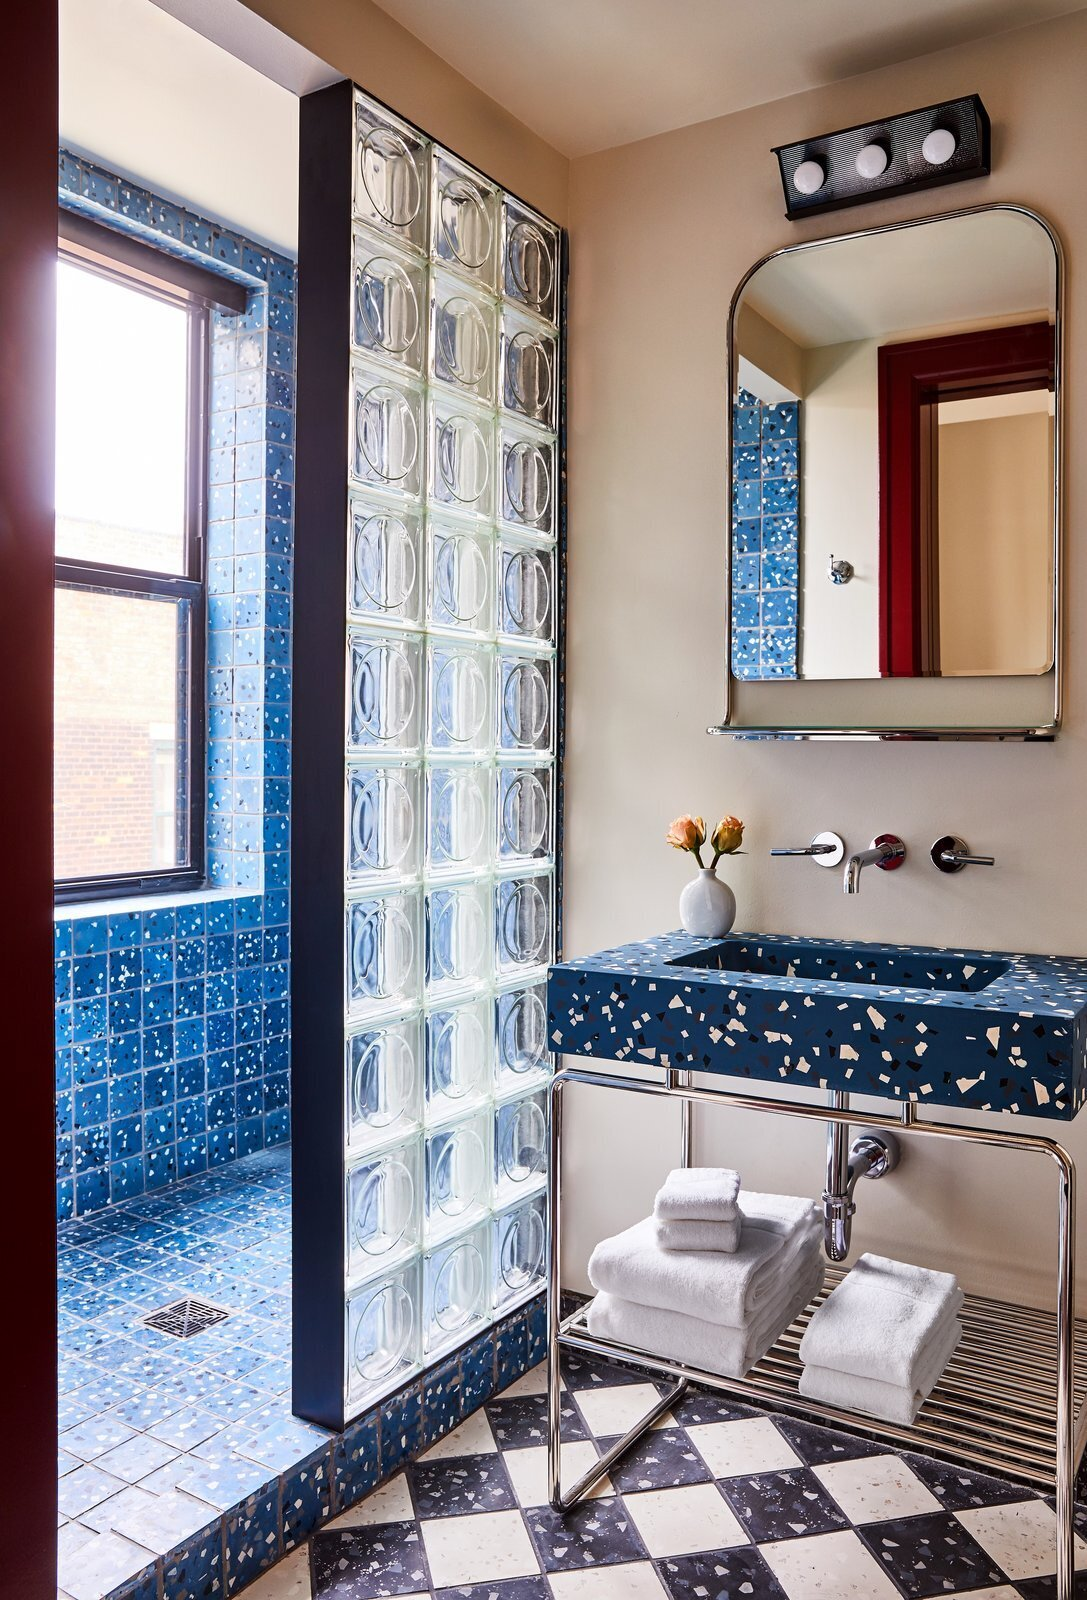 bathroom with blue tile and glass blocks